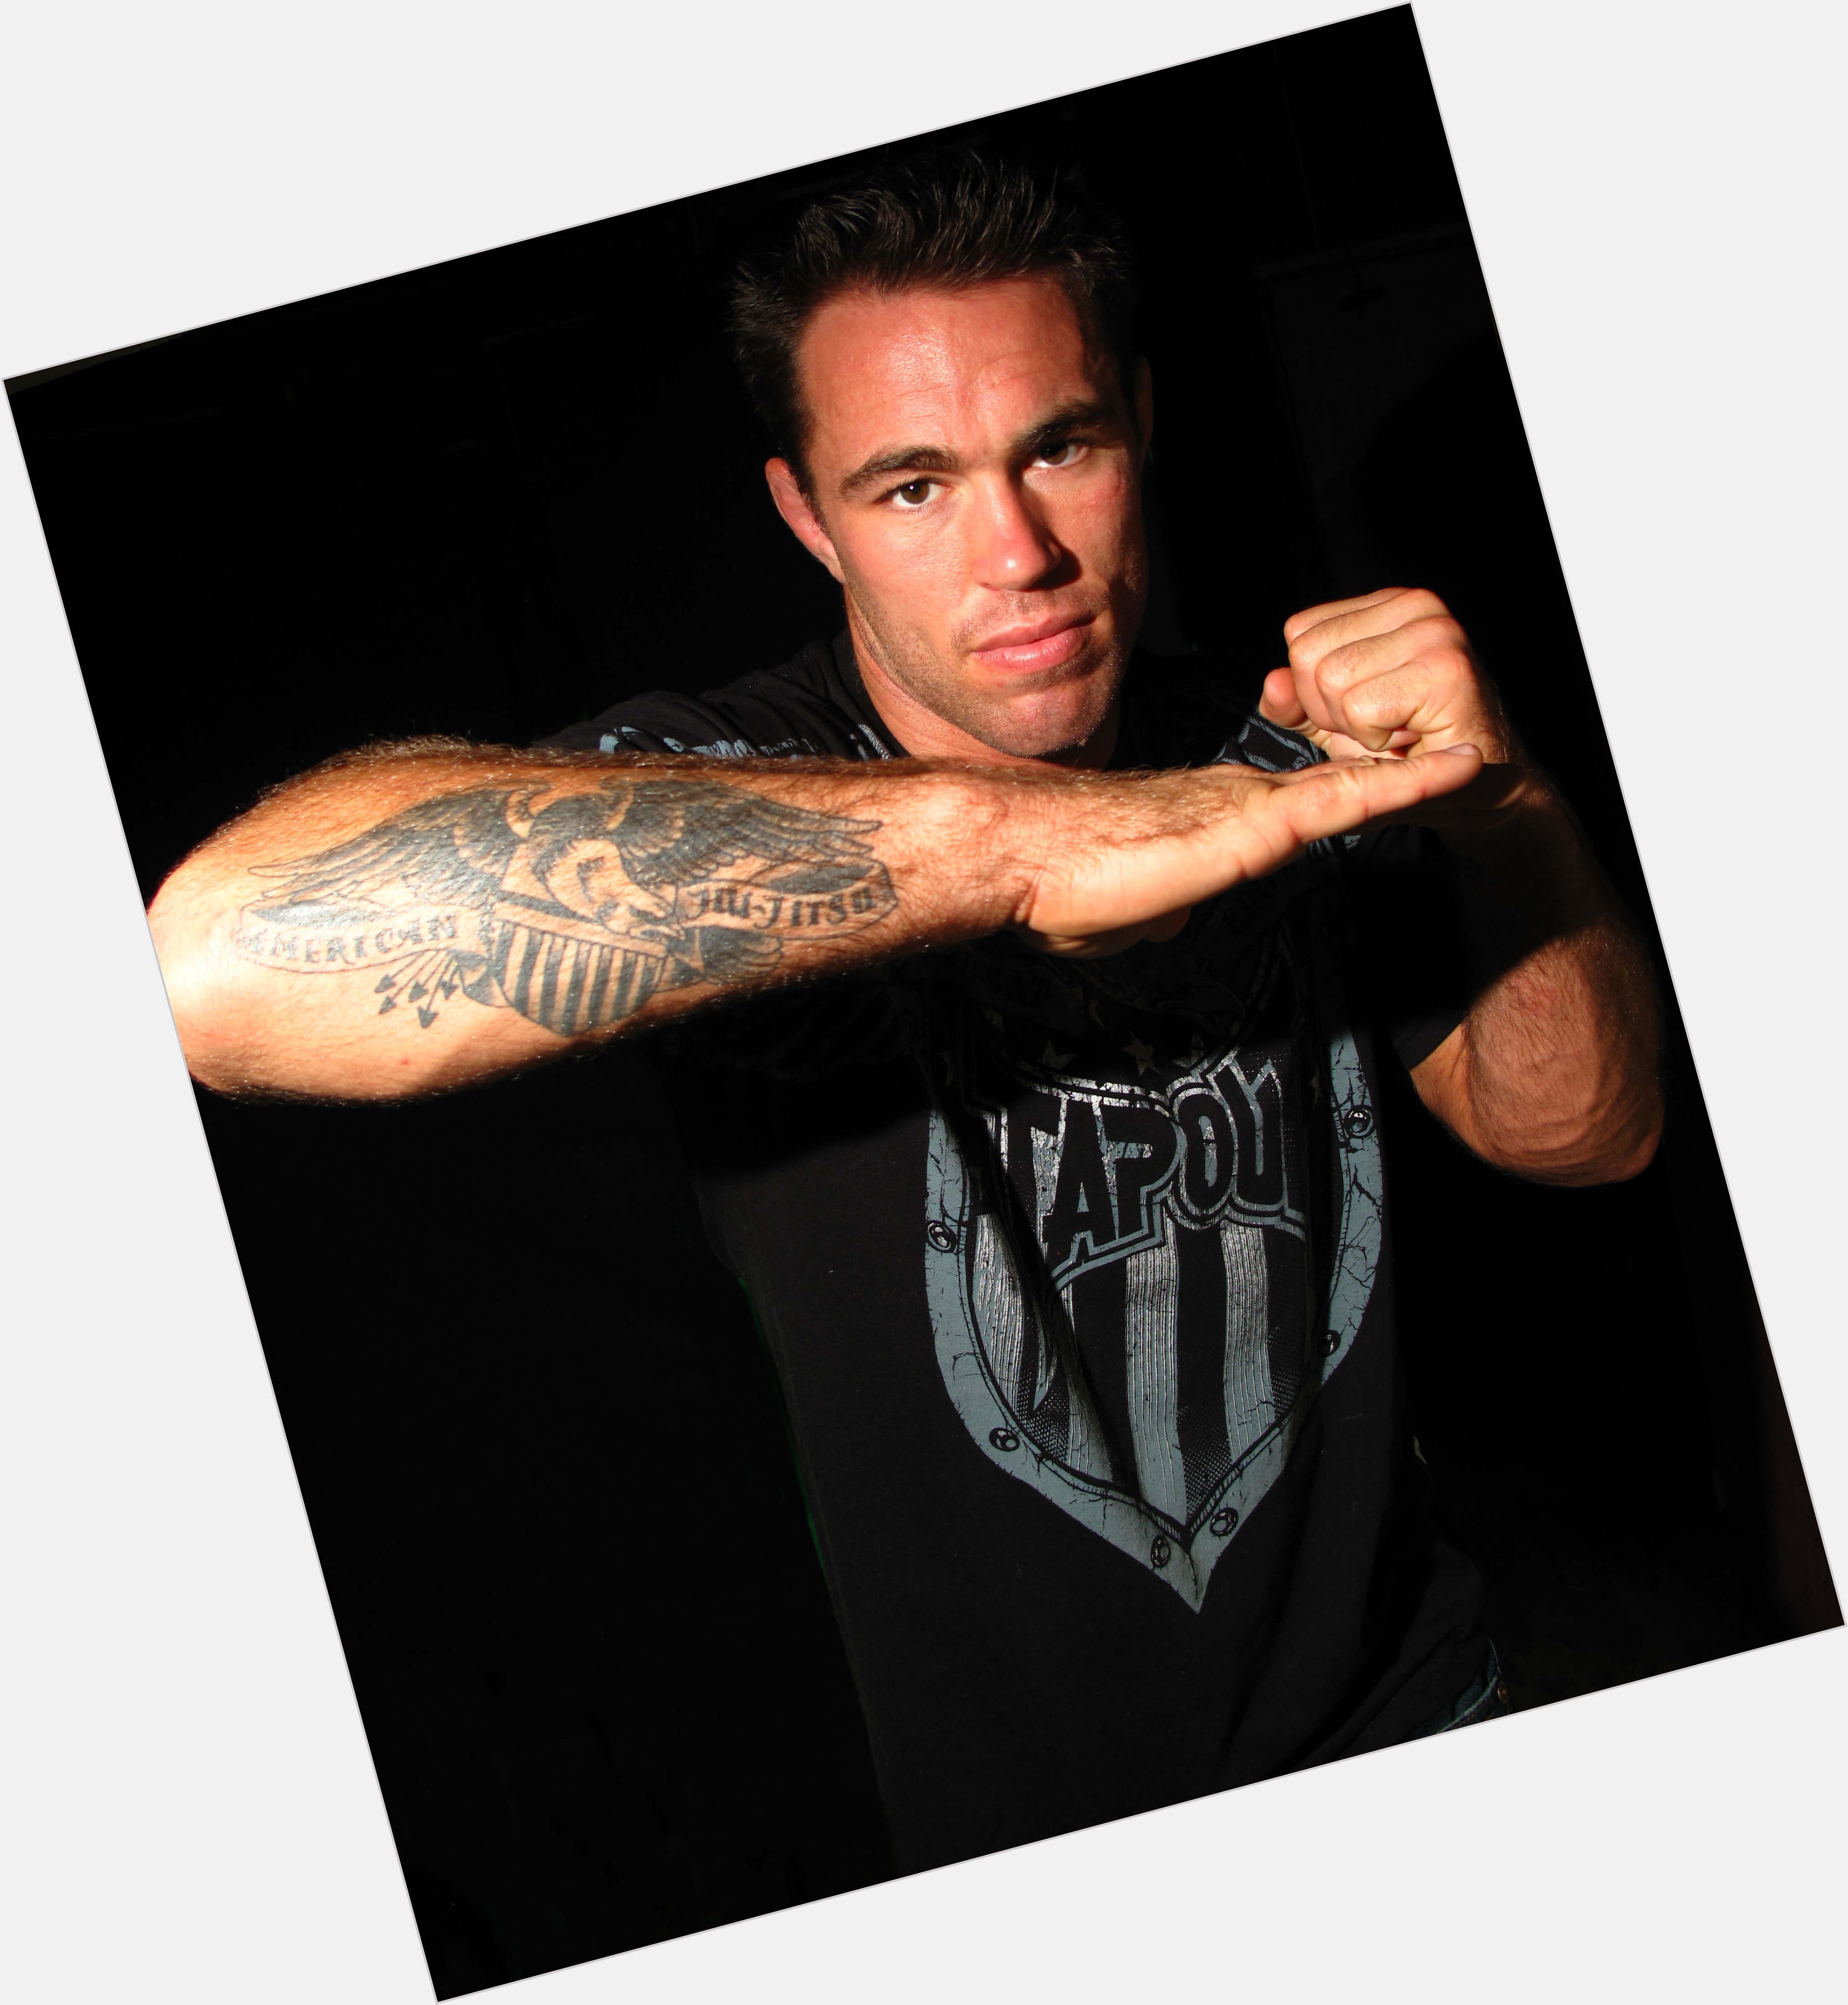 Jake Shields picture 1.jpg